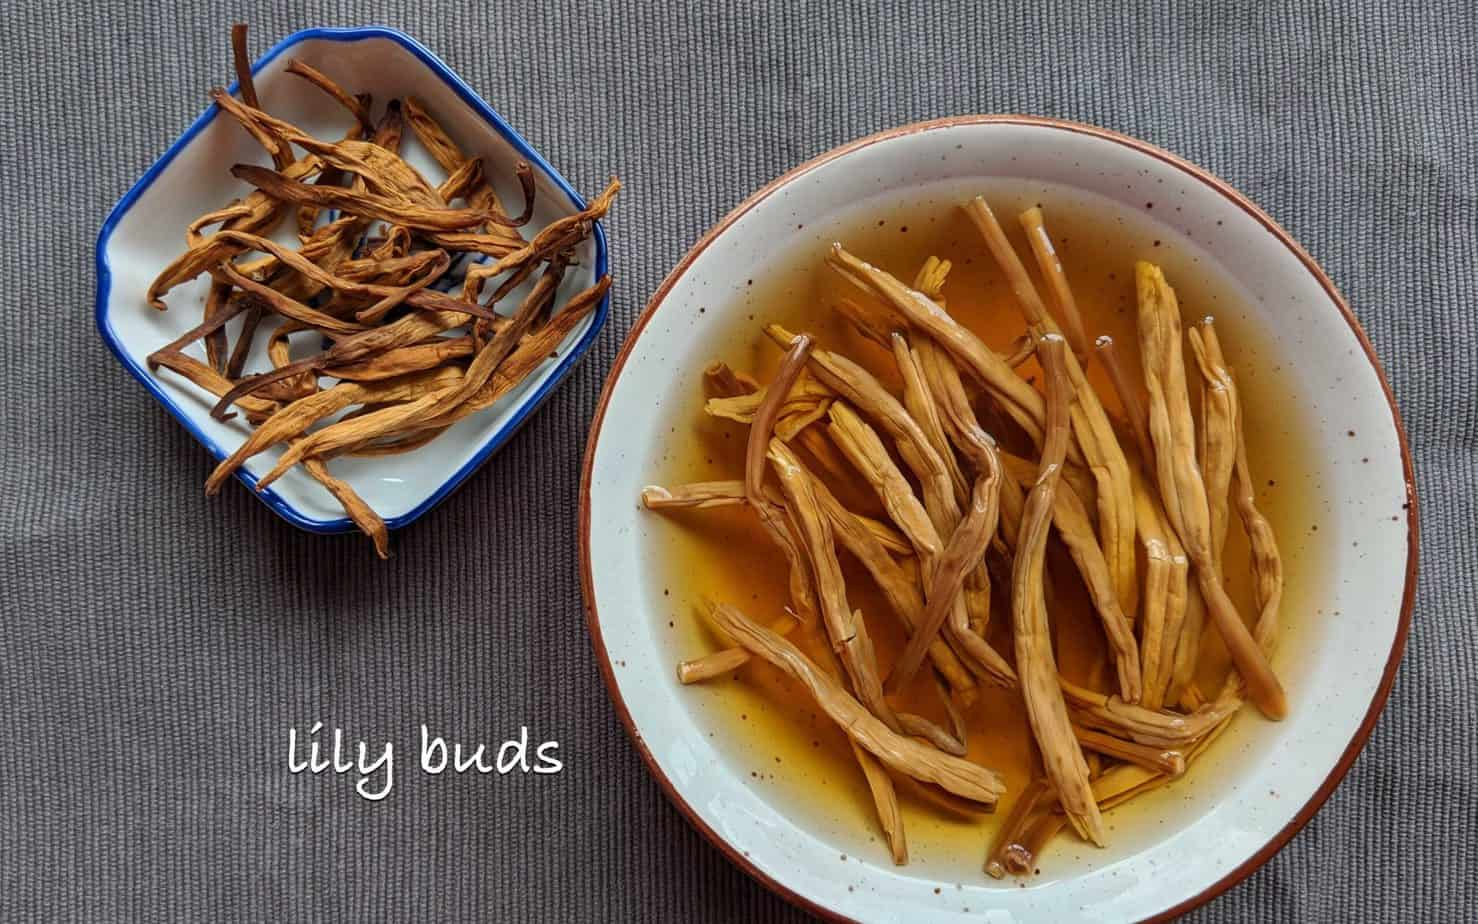 Dried and rehydrated lily buds